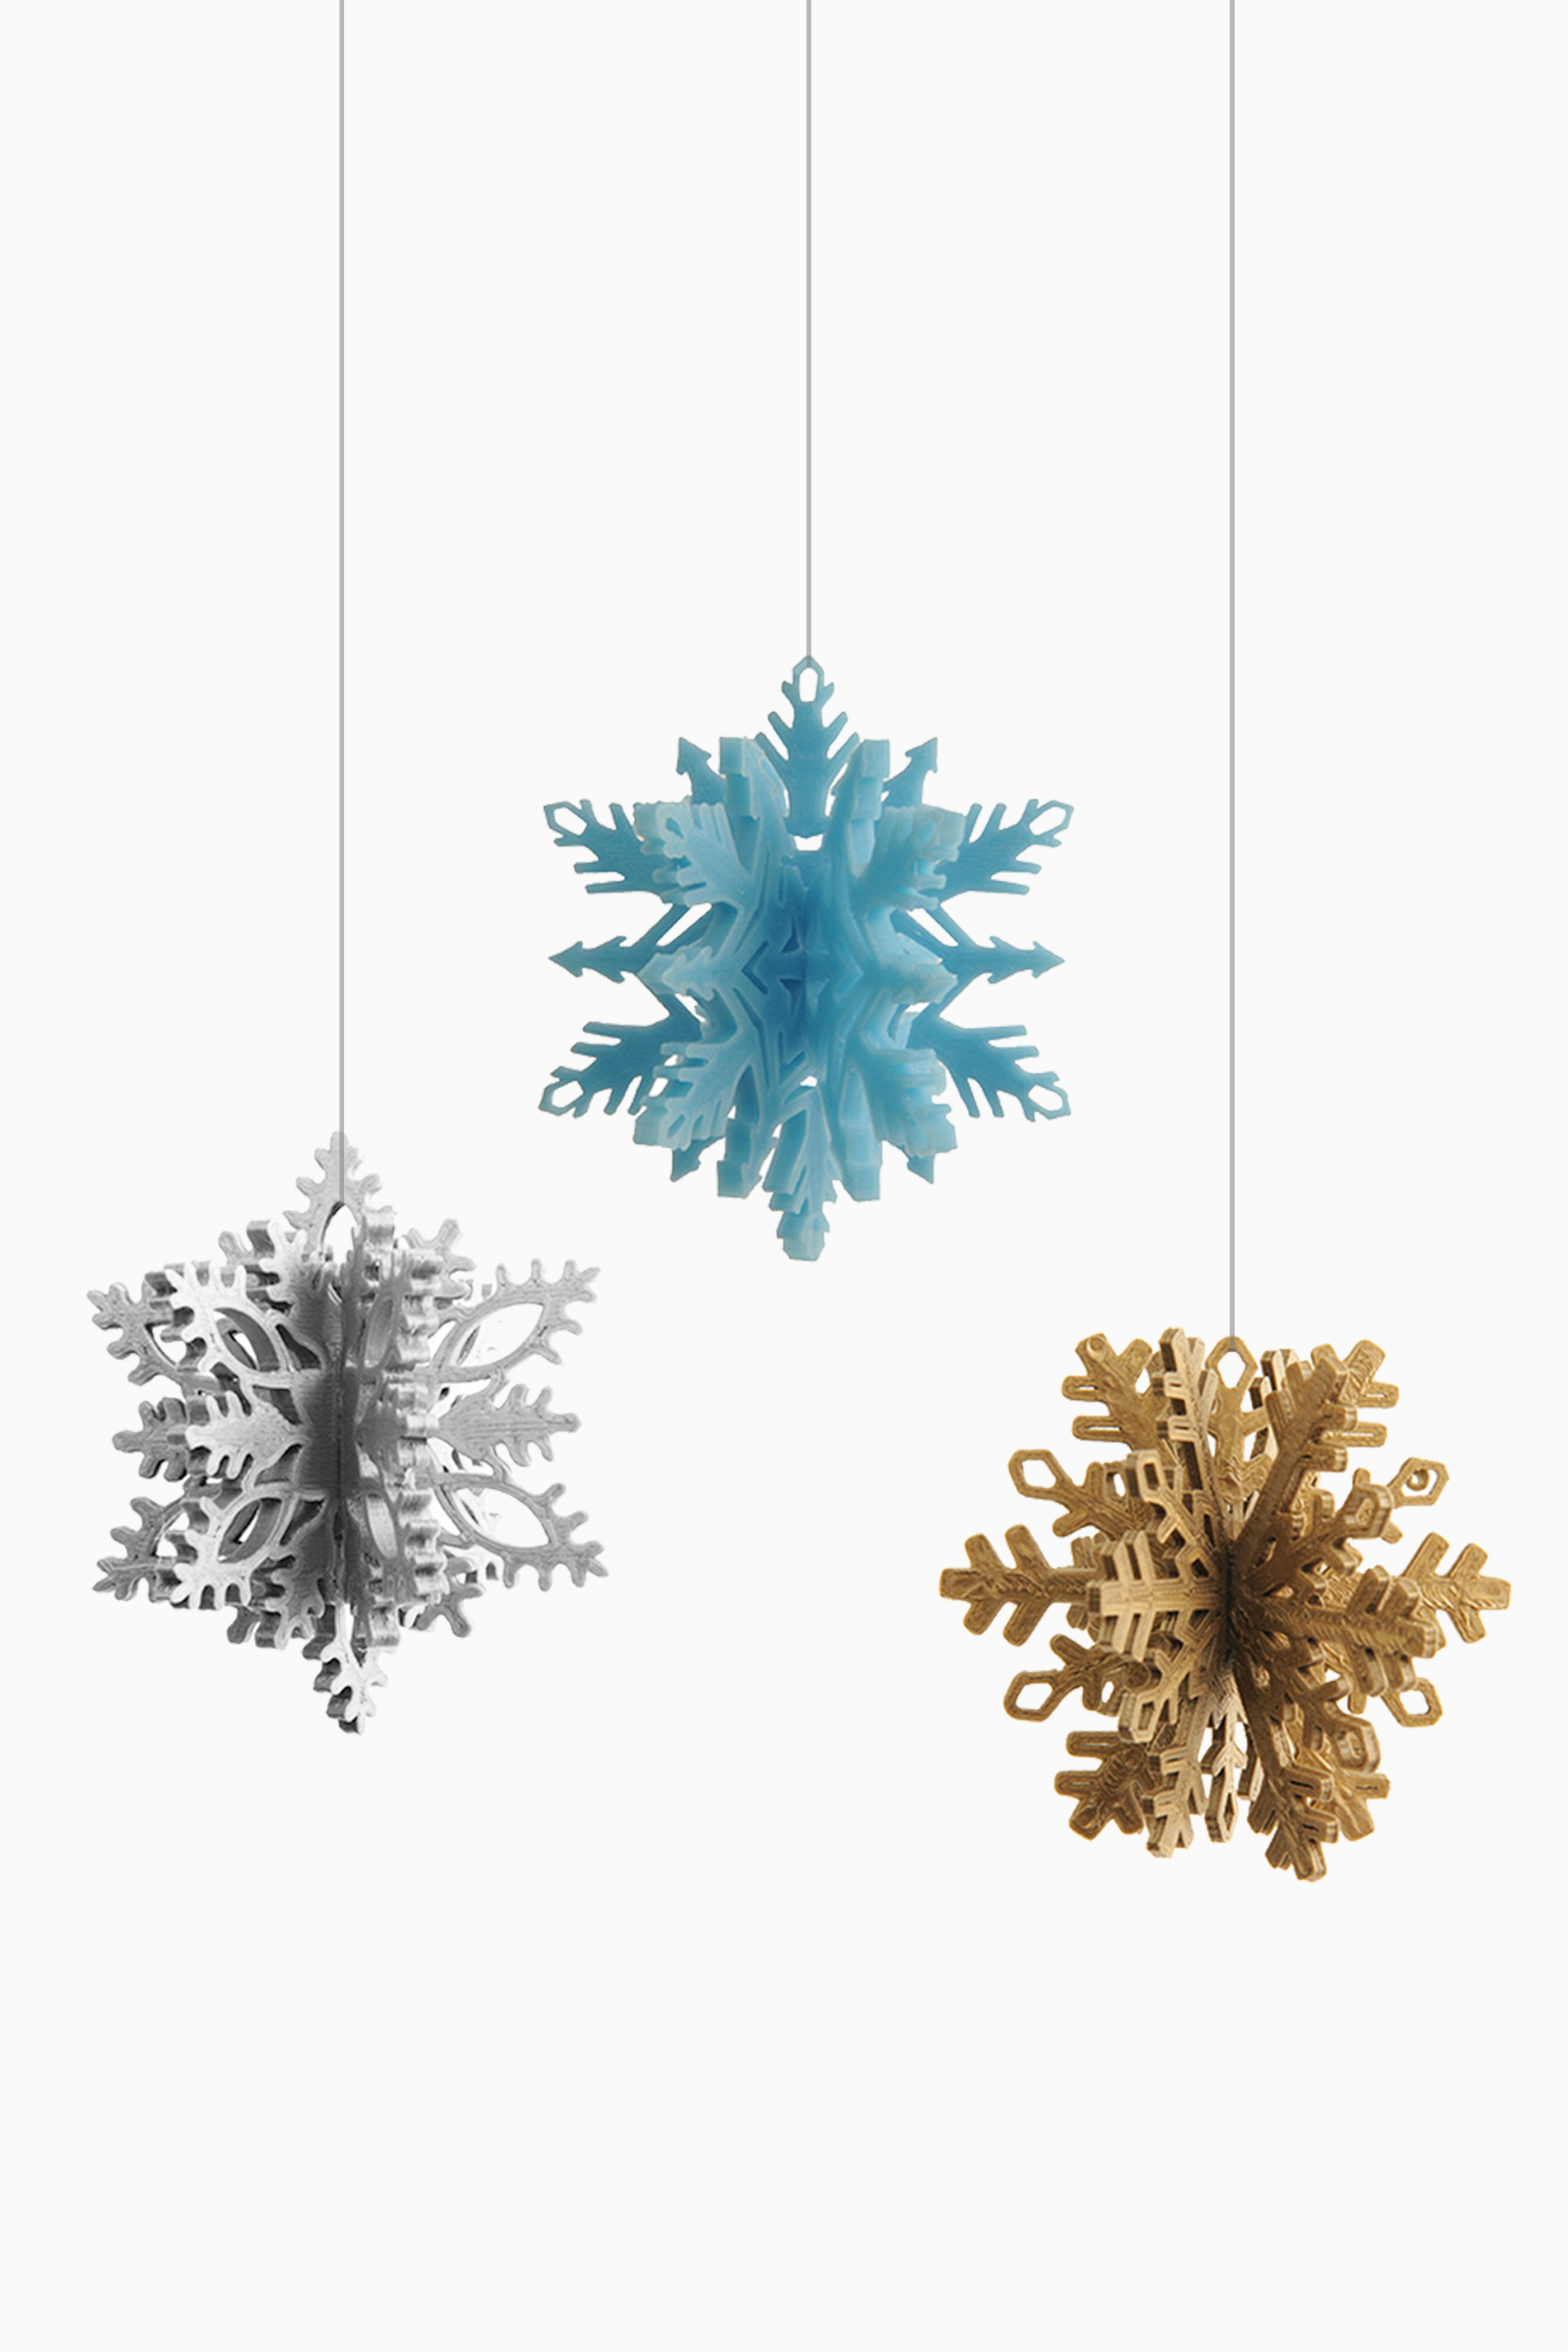 Cubify Snowflake Ornaments by Matthijs Kok